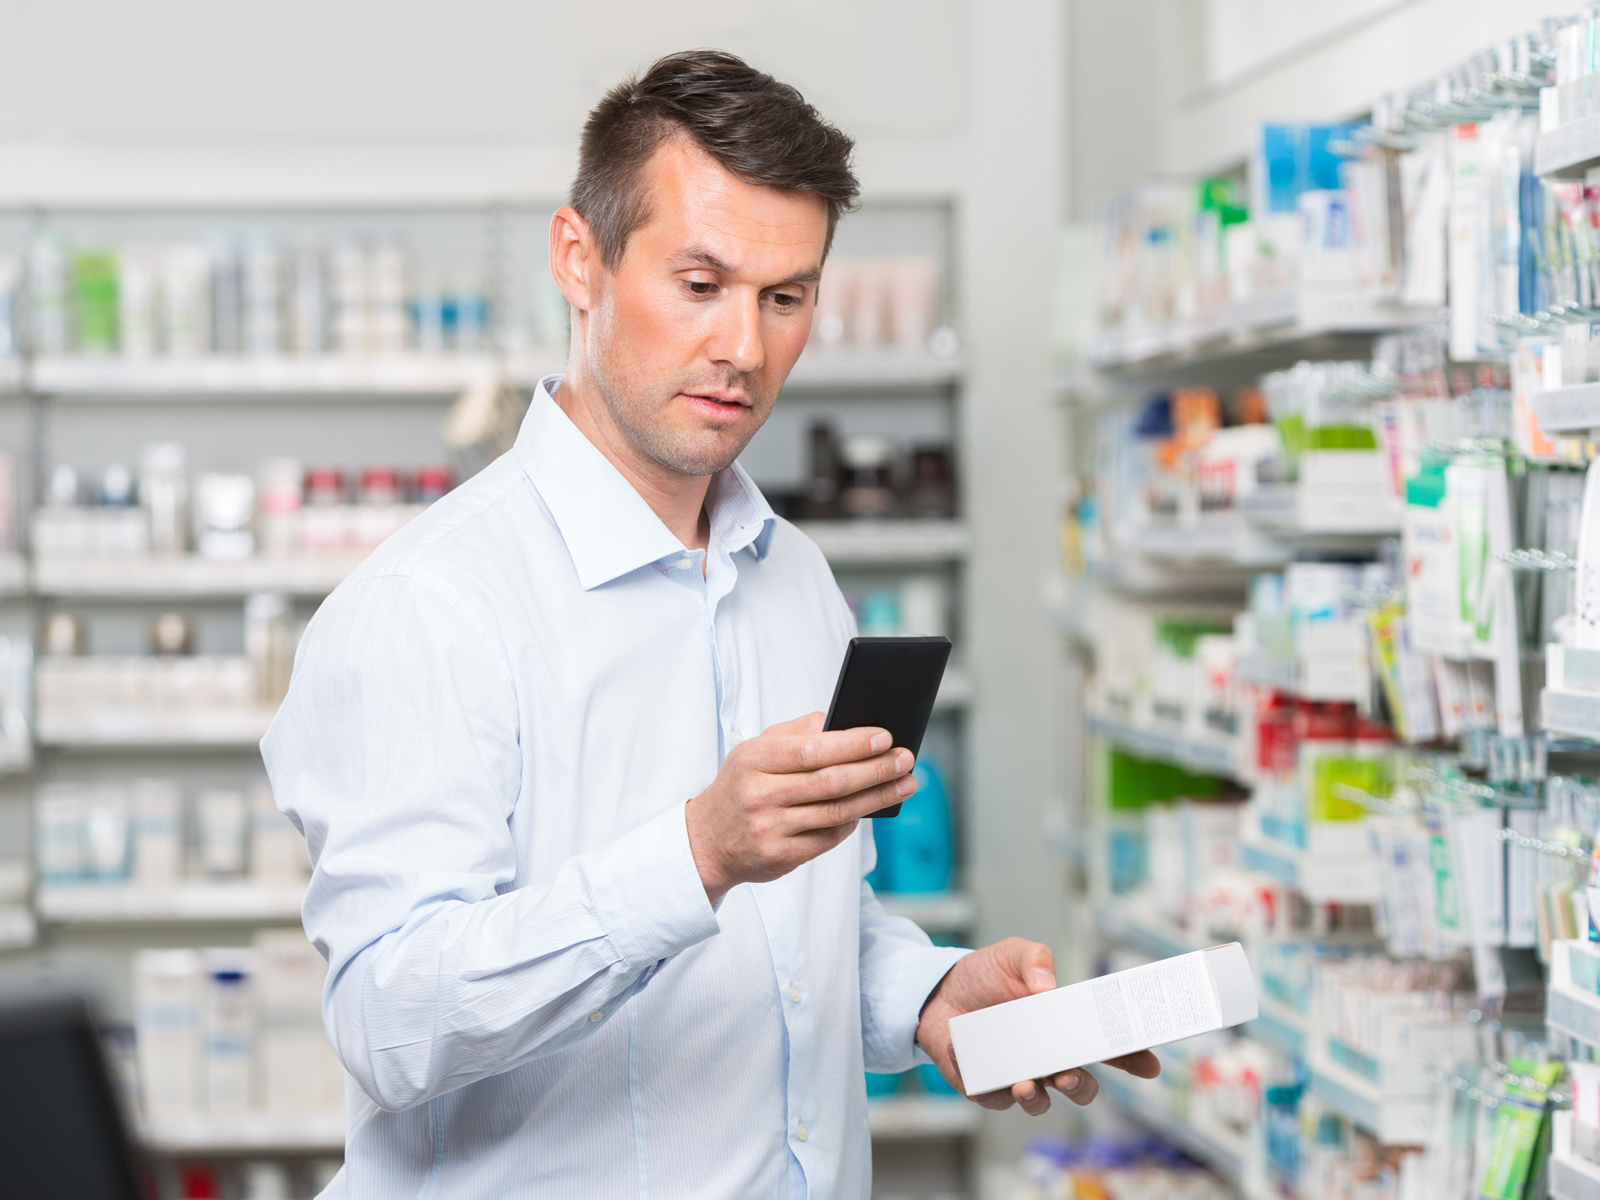 See how you can use SMS in healthcare